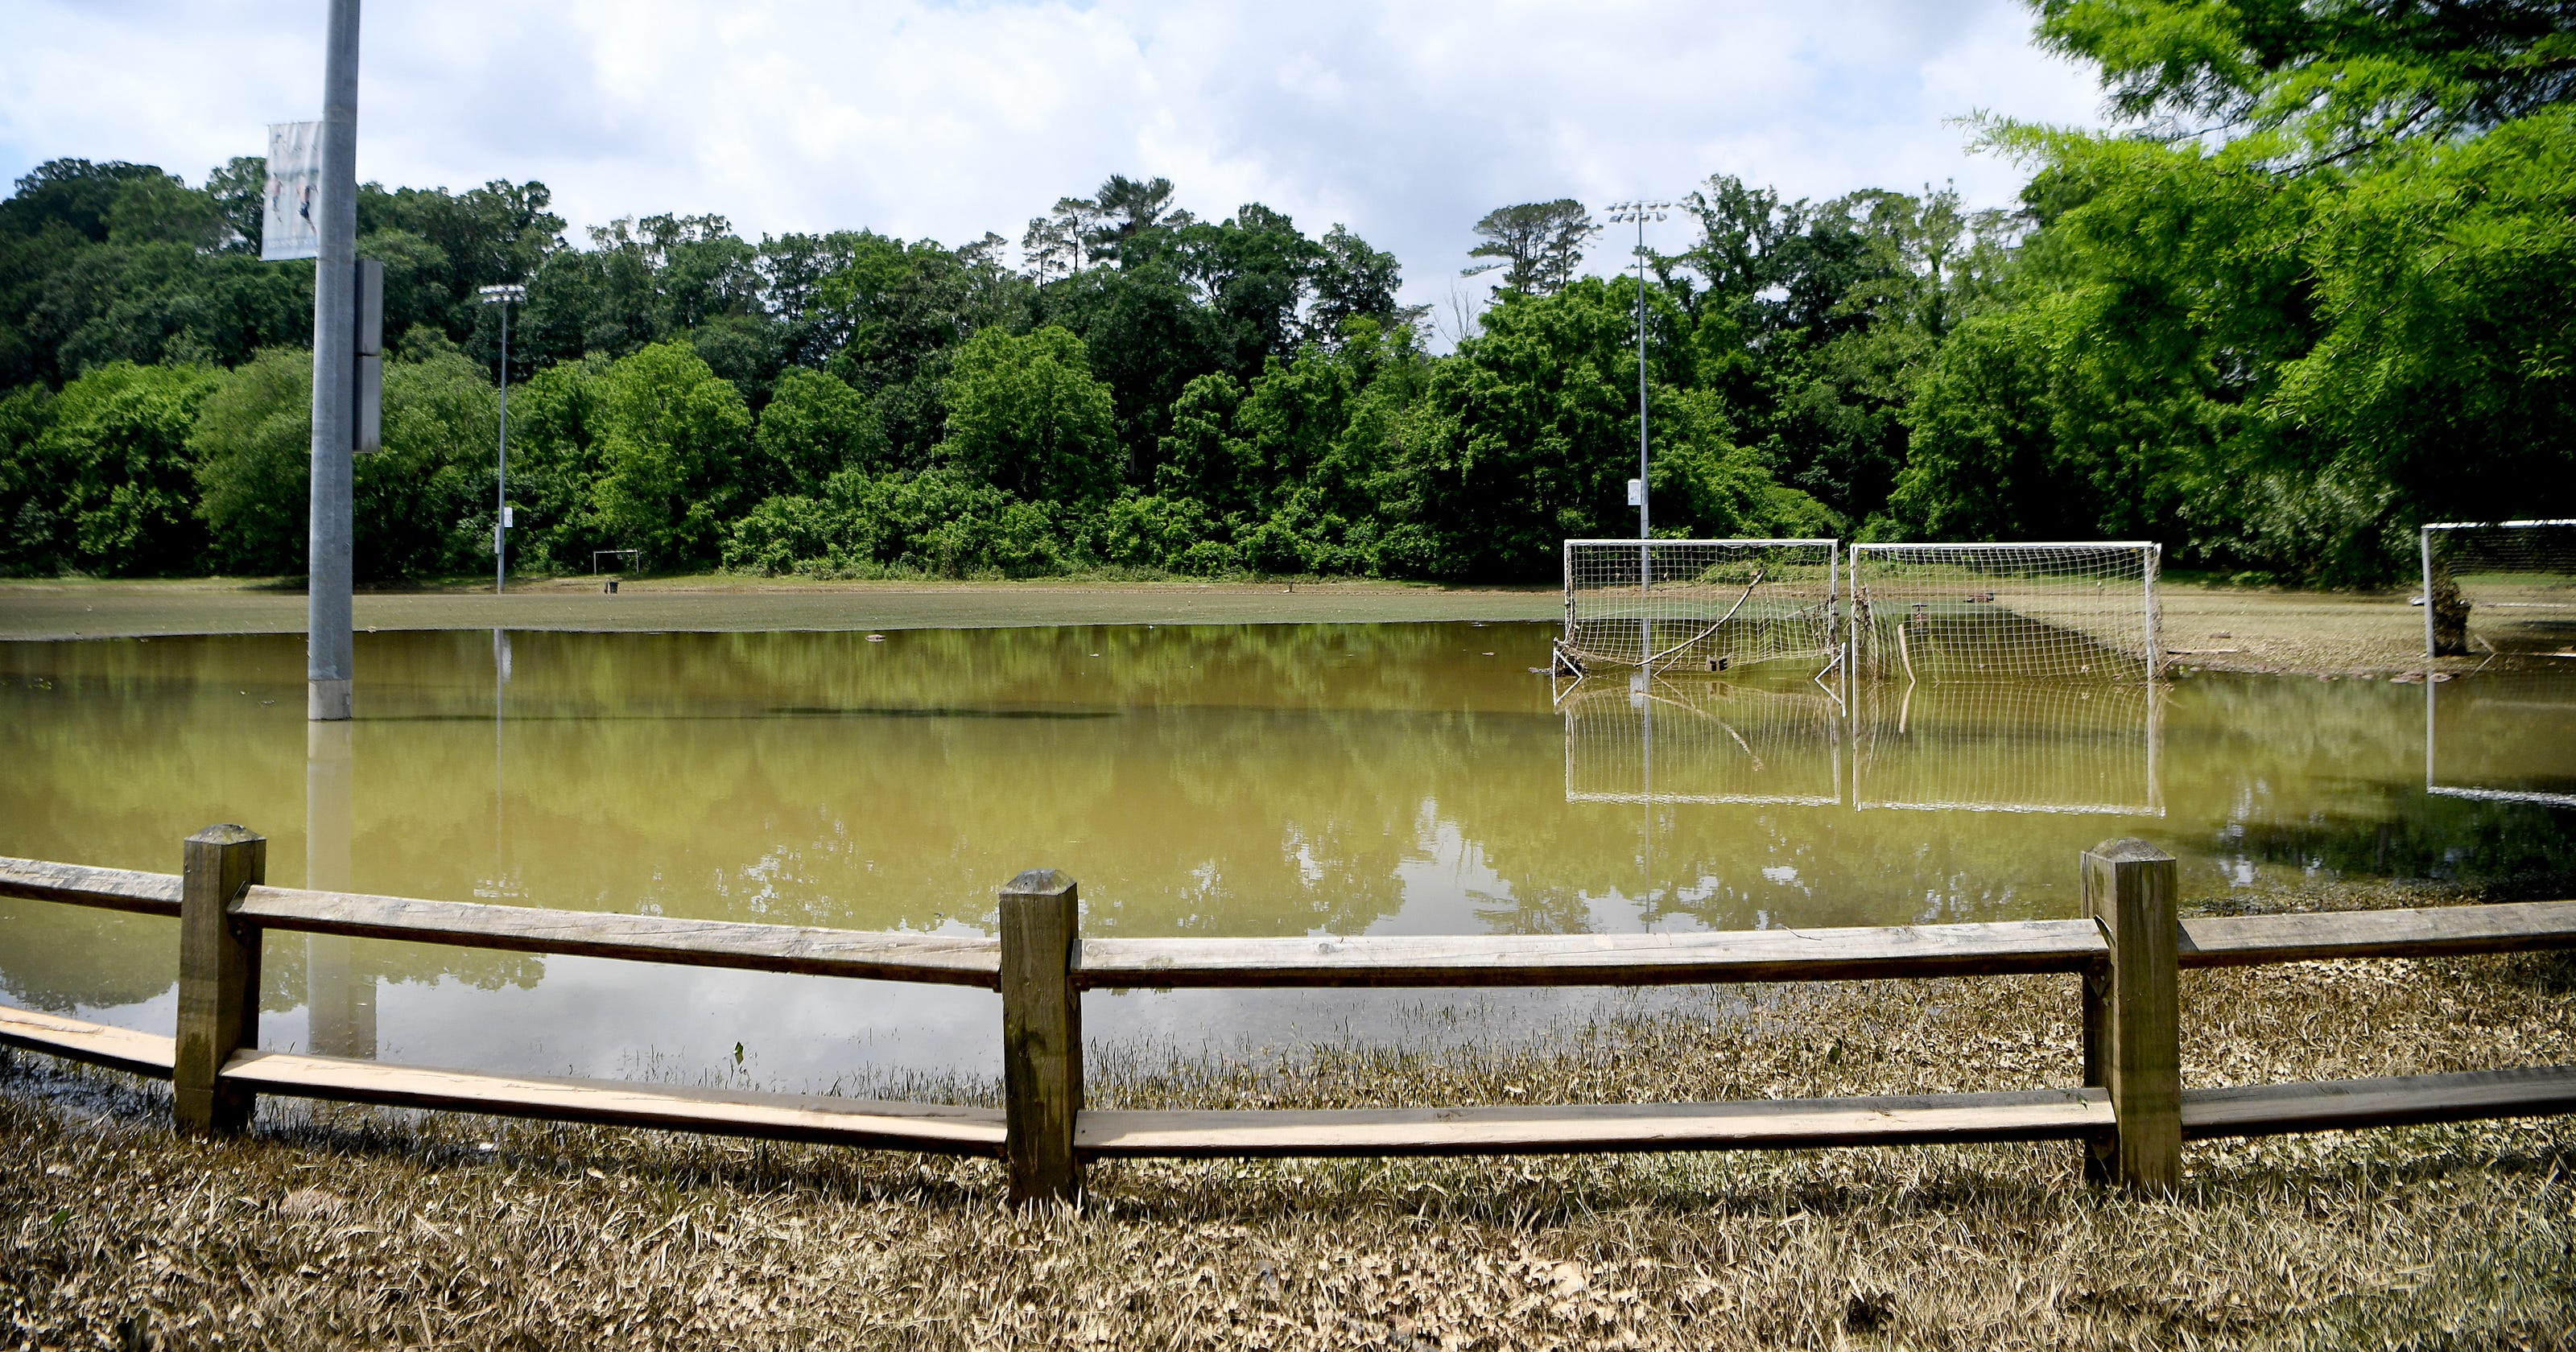 asheville jbl soccer complex covered by water remnants of alberto